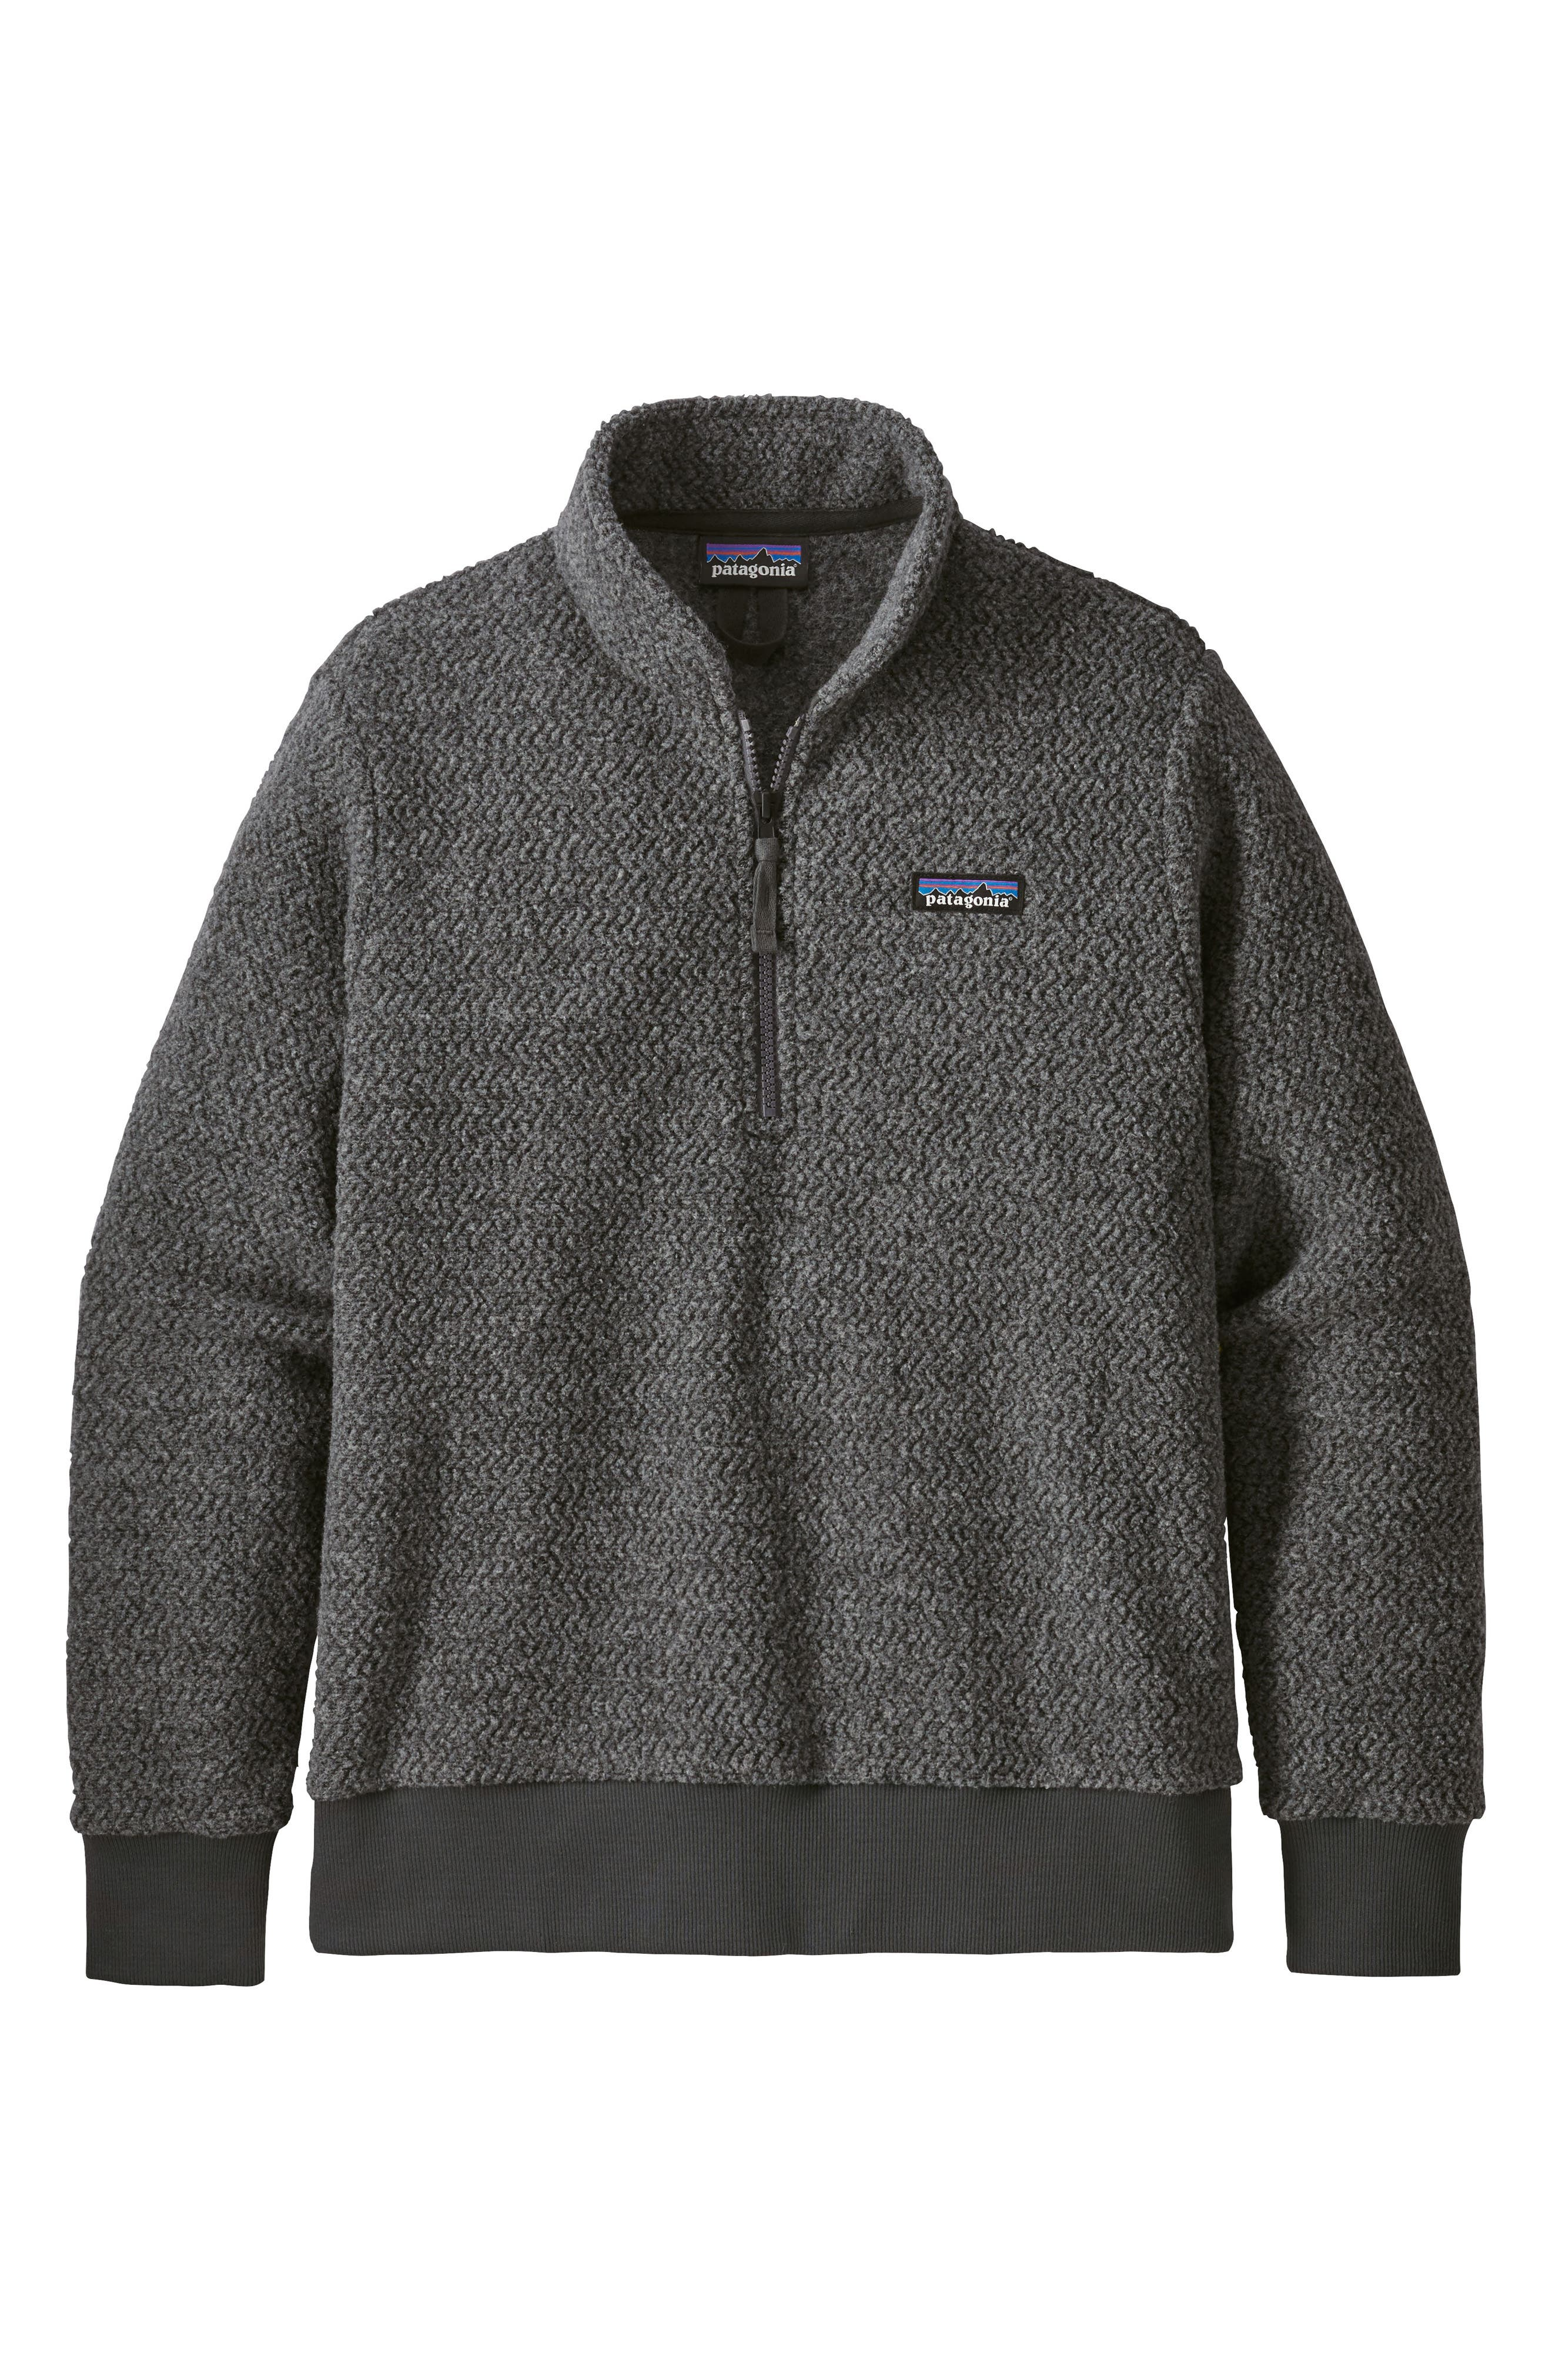 Woolyester Fleece Quarter Zip Pullover,                         Main,                         color, FORGE GREY